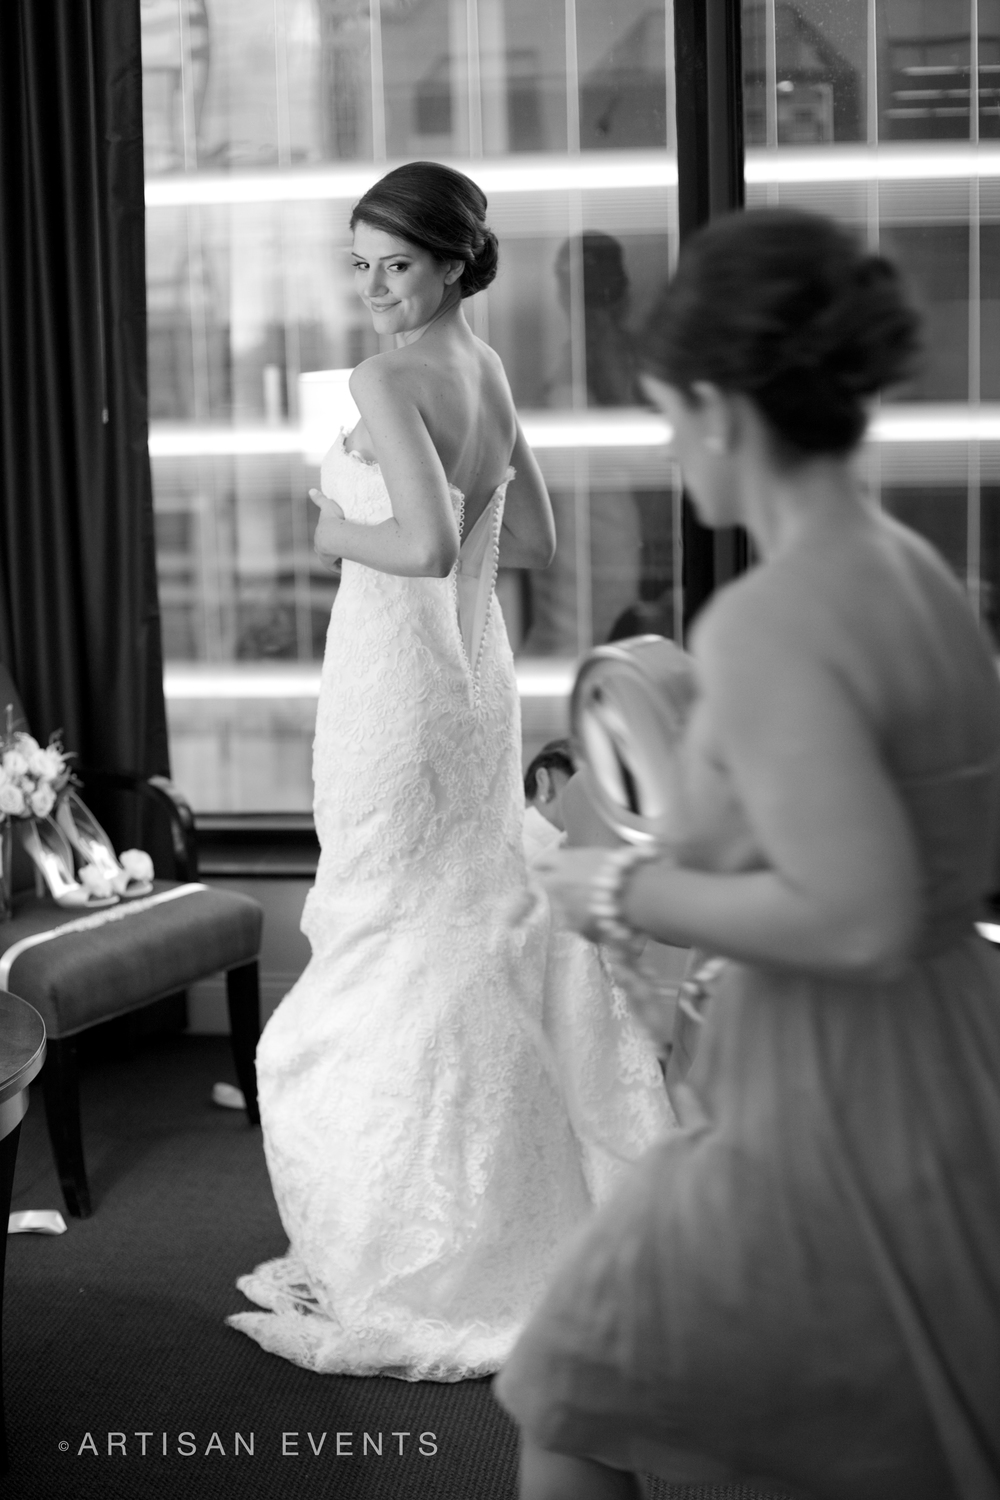 0124_ArtisanEvents_Chicago_Wedding_Kahler.jpg